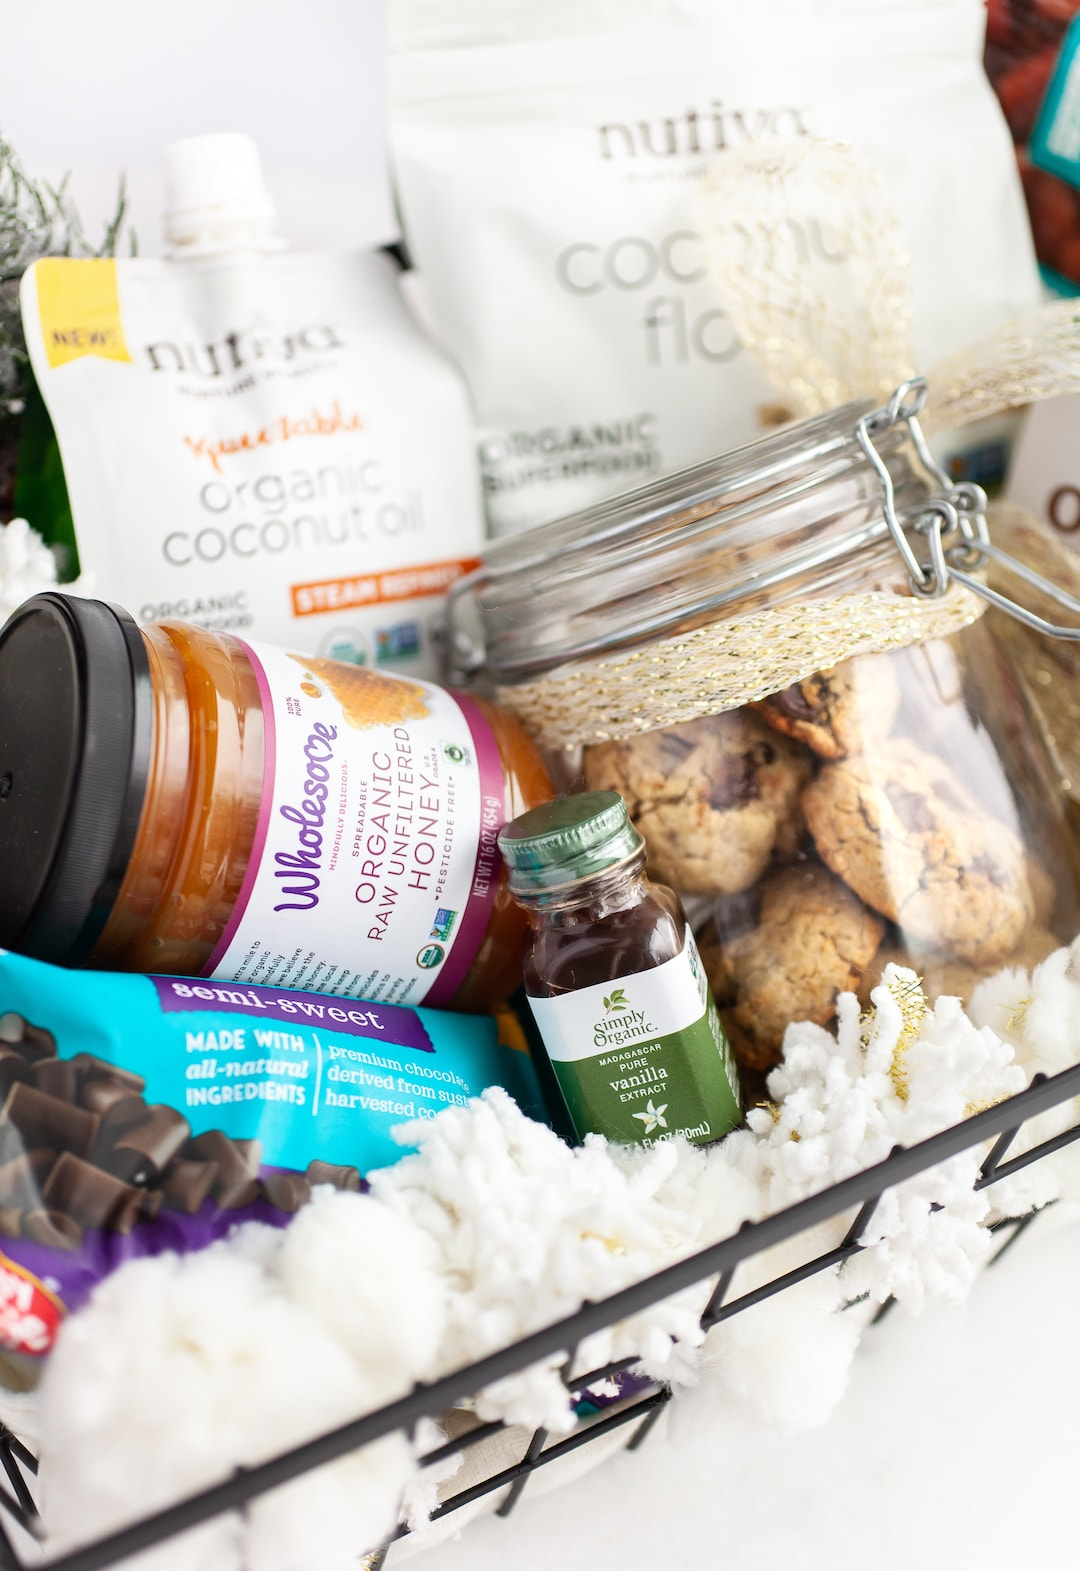 Holiday Baking Gift Basket for Soft & Chewy Coconut Flour Chocolate Chip Cookies